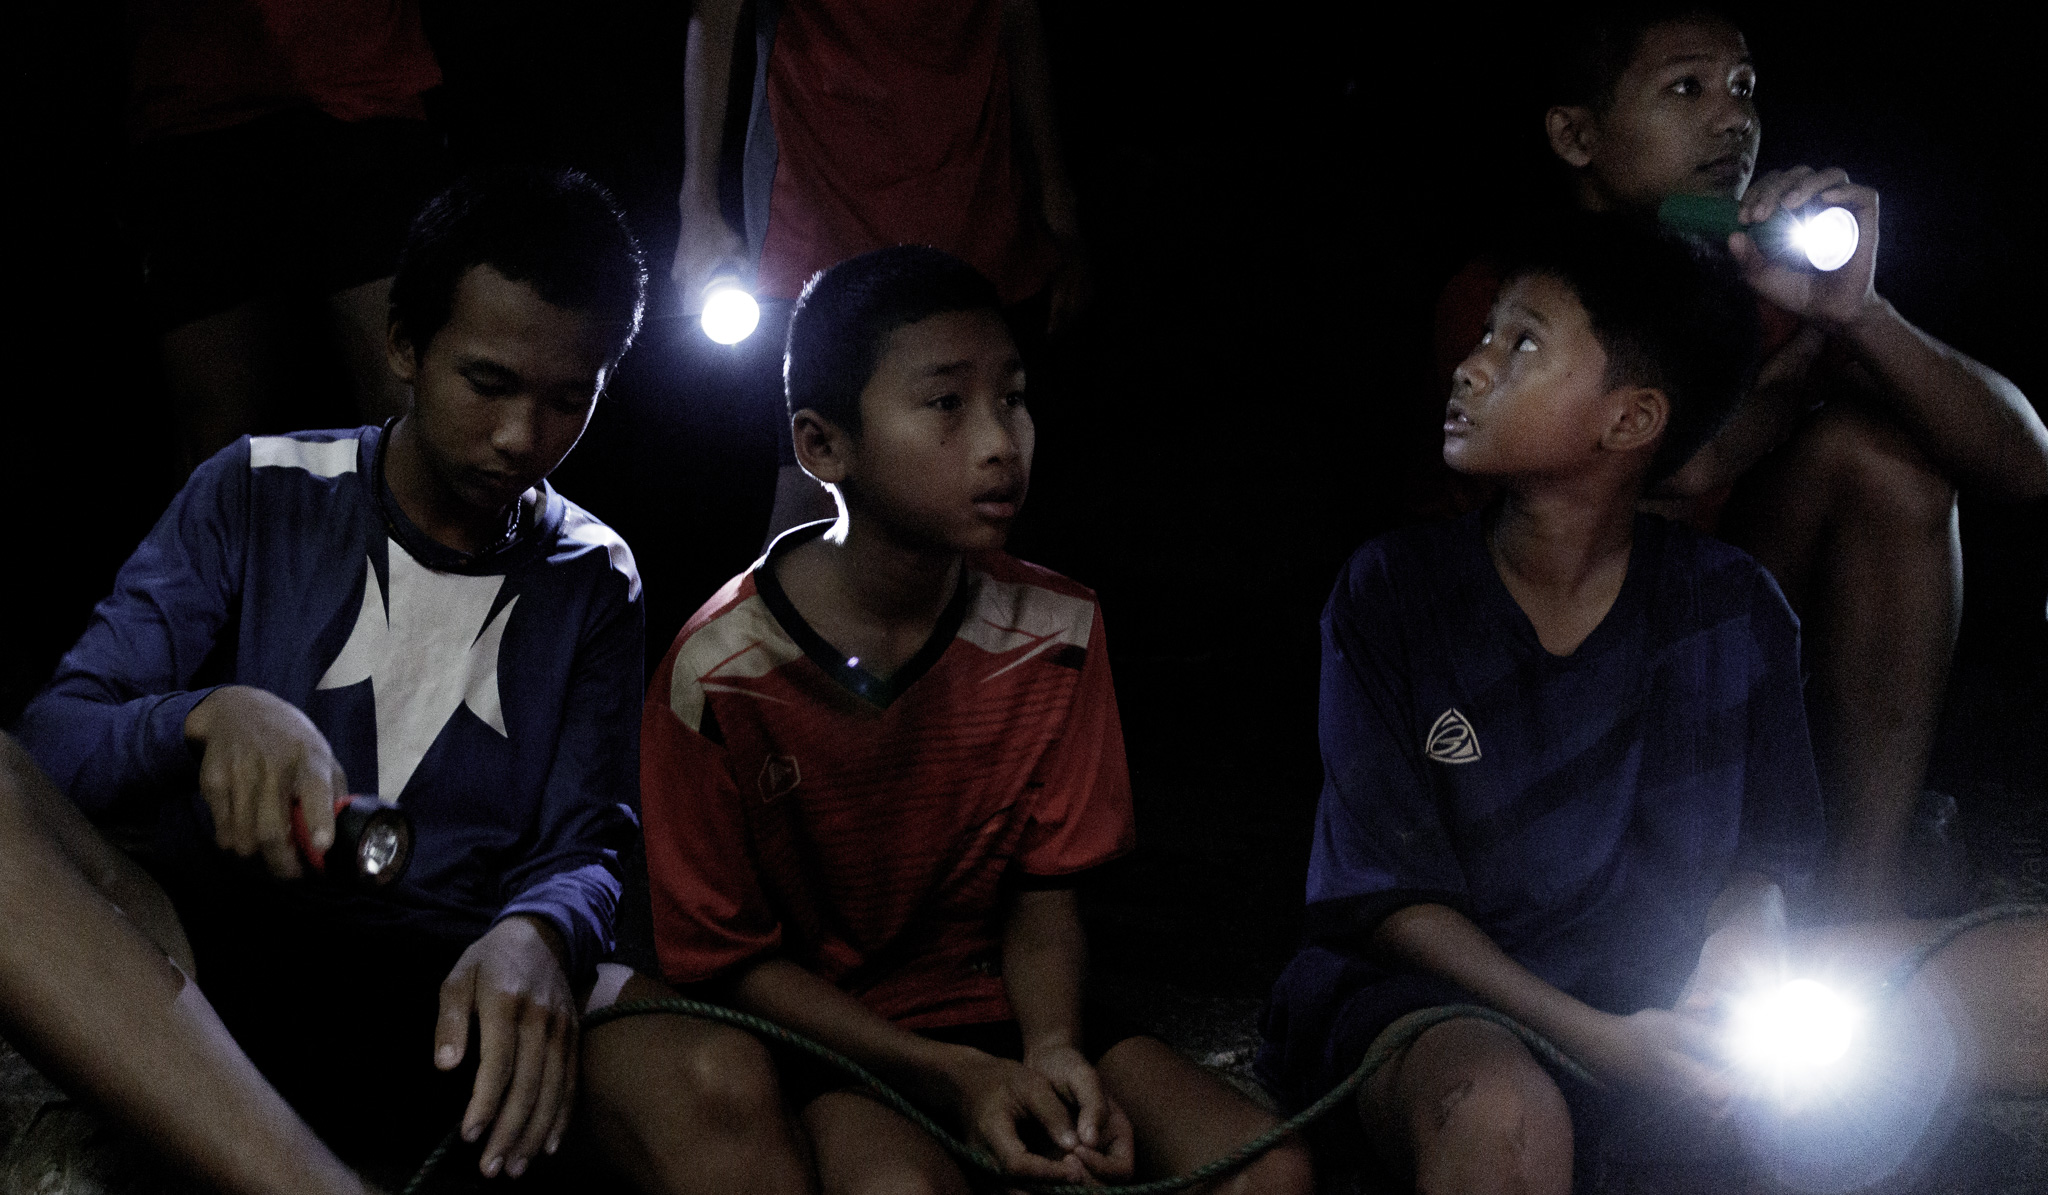 12 boys and their football coach get trapped in a cave in Northern Thailand. Photo (c) Fredrik Divall